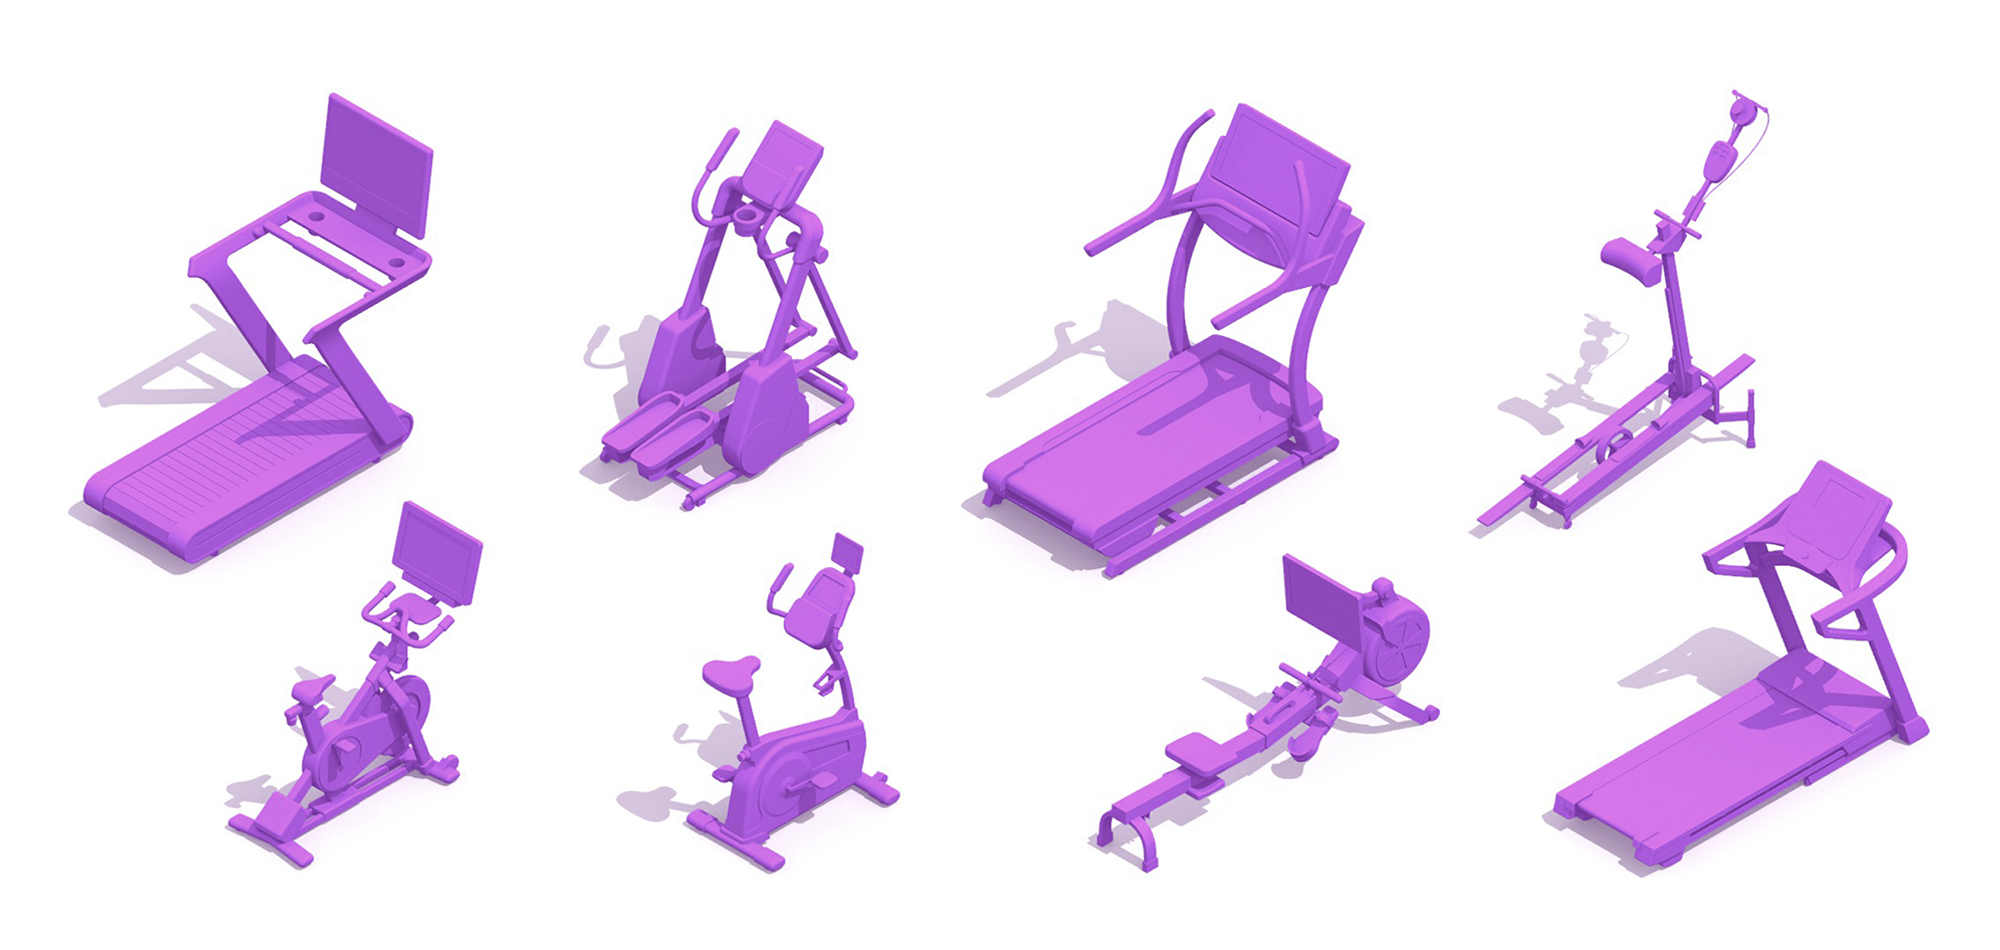 Collection of various pieces of Exercise Equipment viewed in 3D including treadmills, cycles, ellipticals and rowers